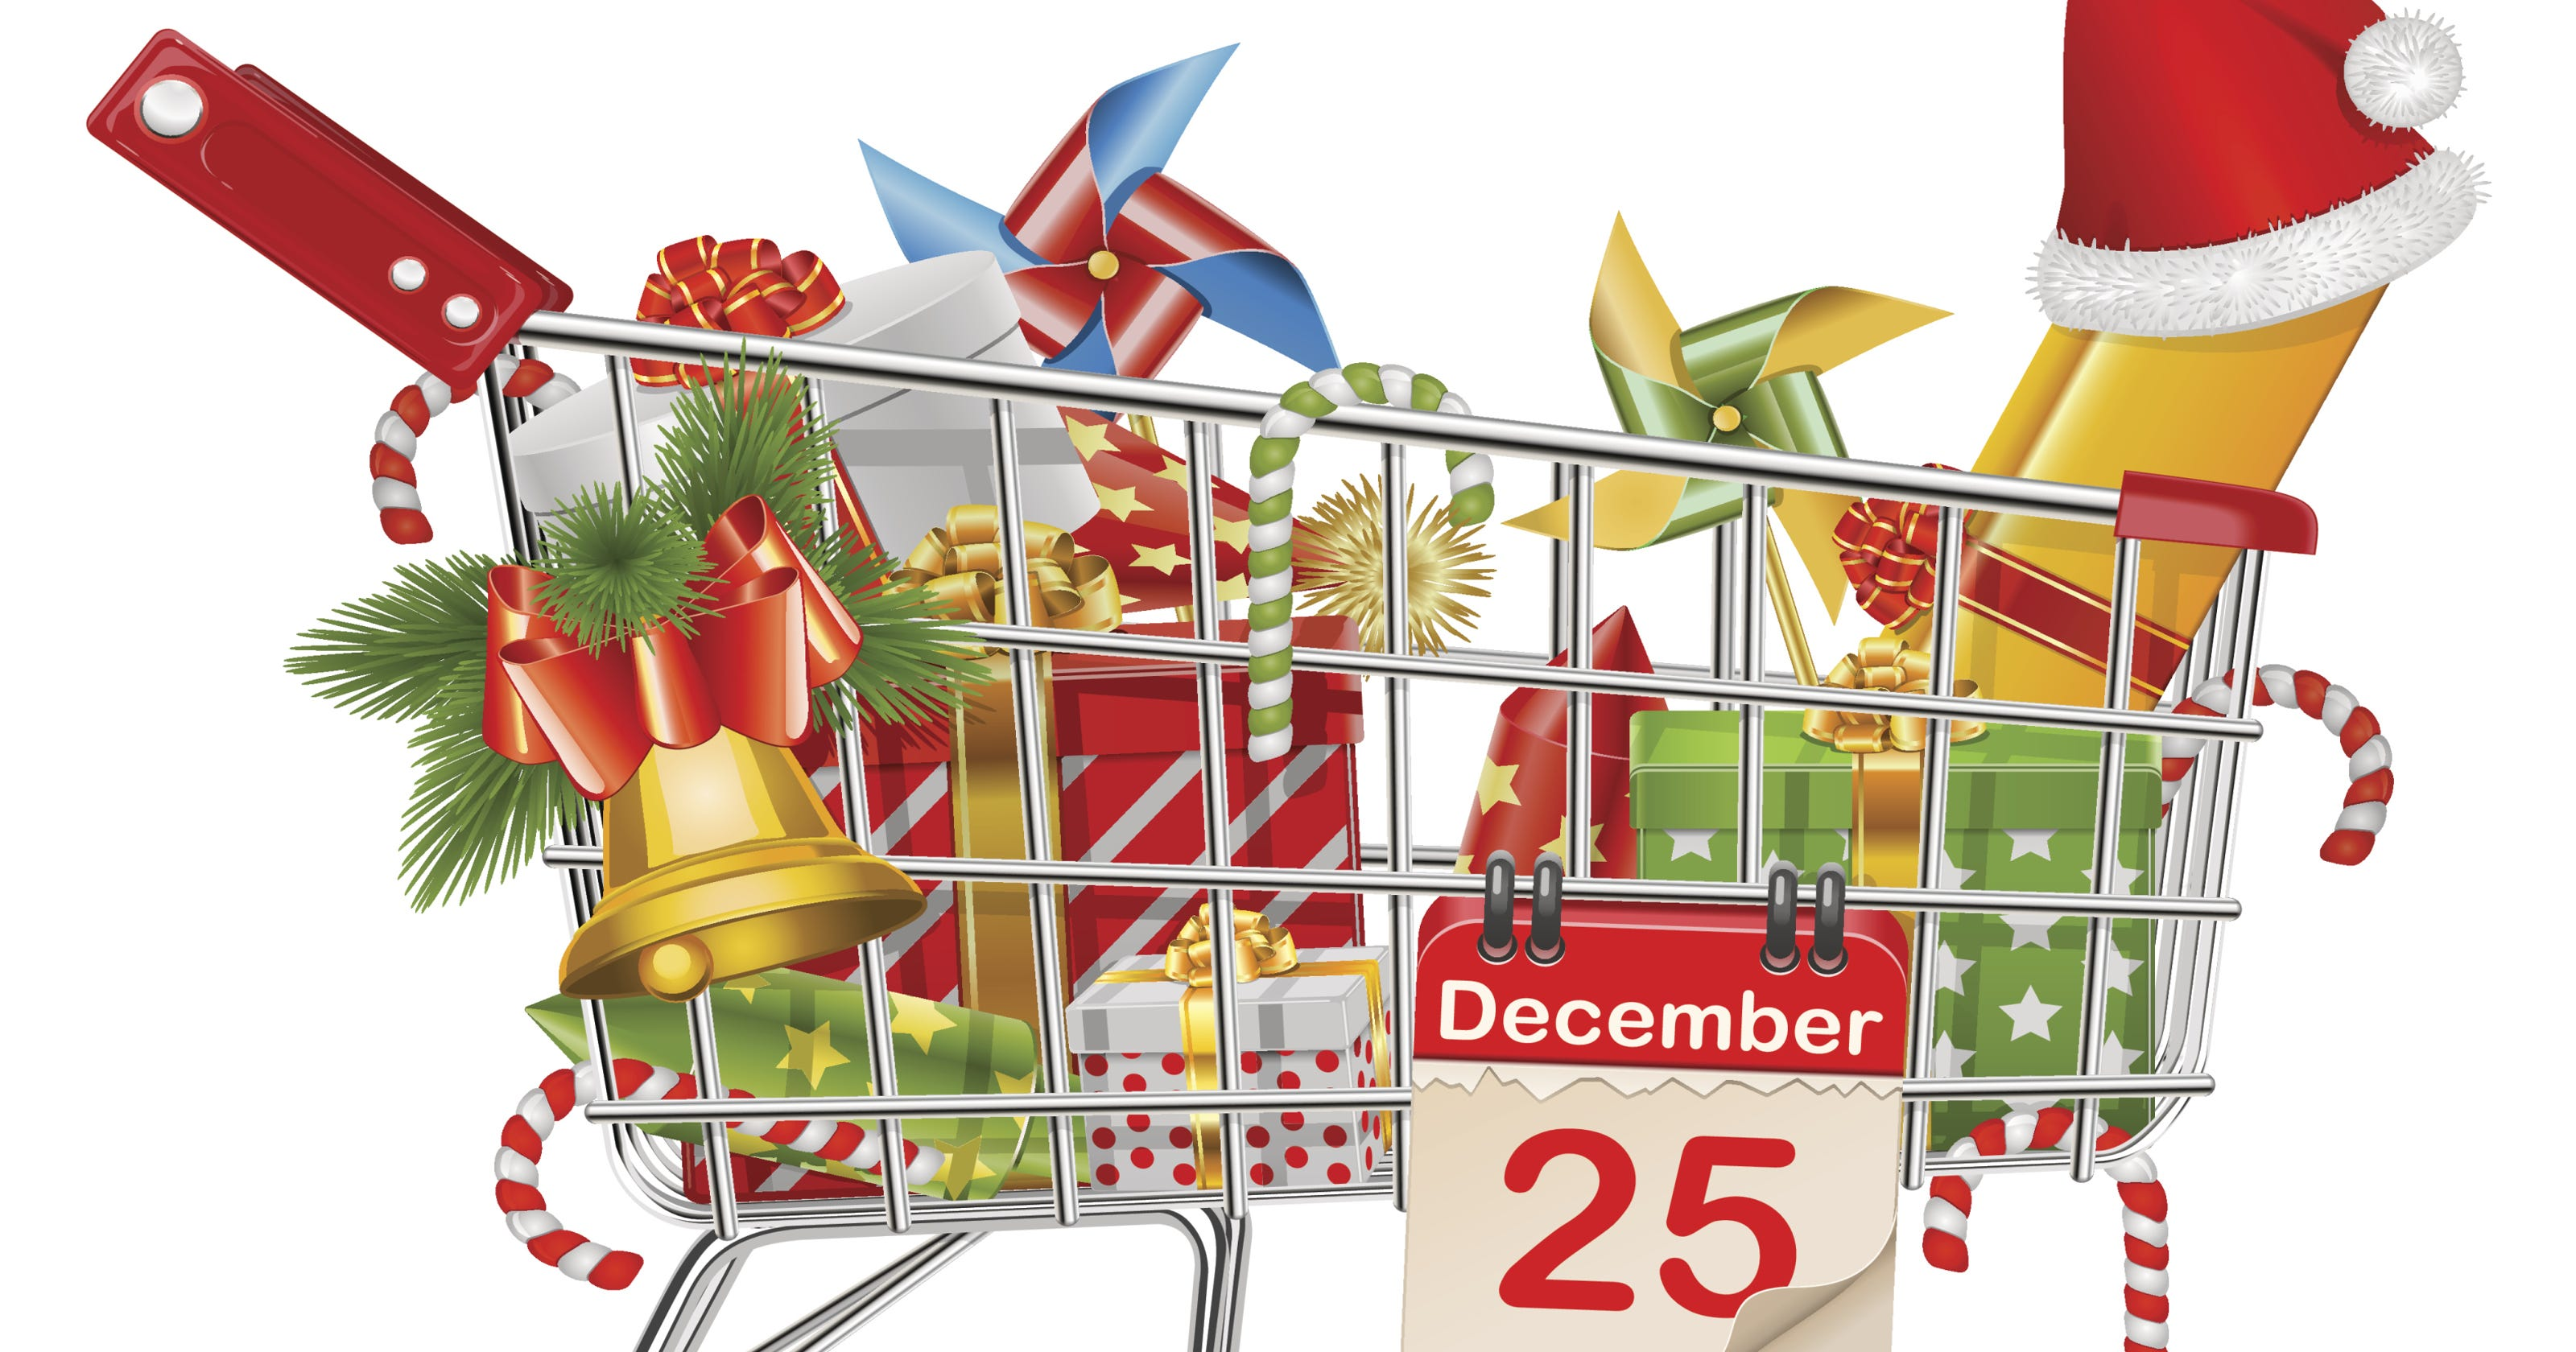 st vincent de paul to open holiday store in appleton - Stores Open On Christmas 2014